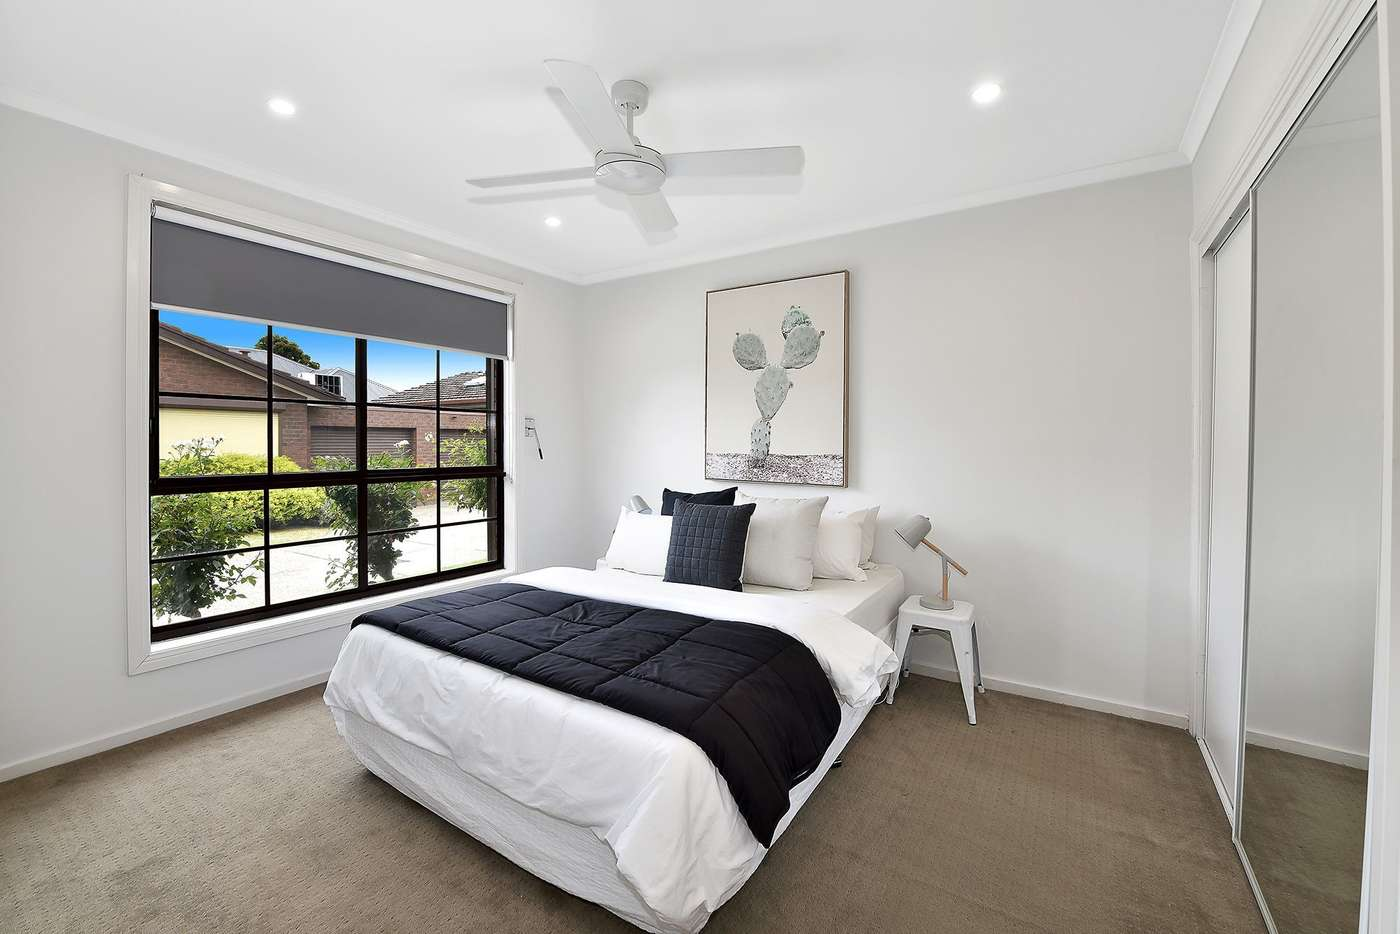 Fifth view of Homely unit listing, 3/15-17 Watt Street, Airport West VIC 3042